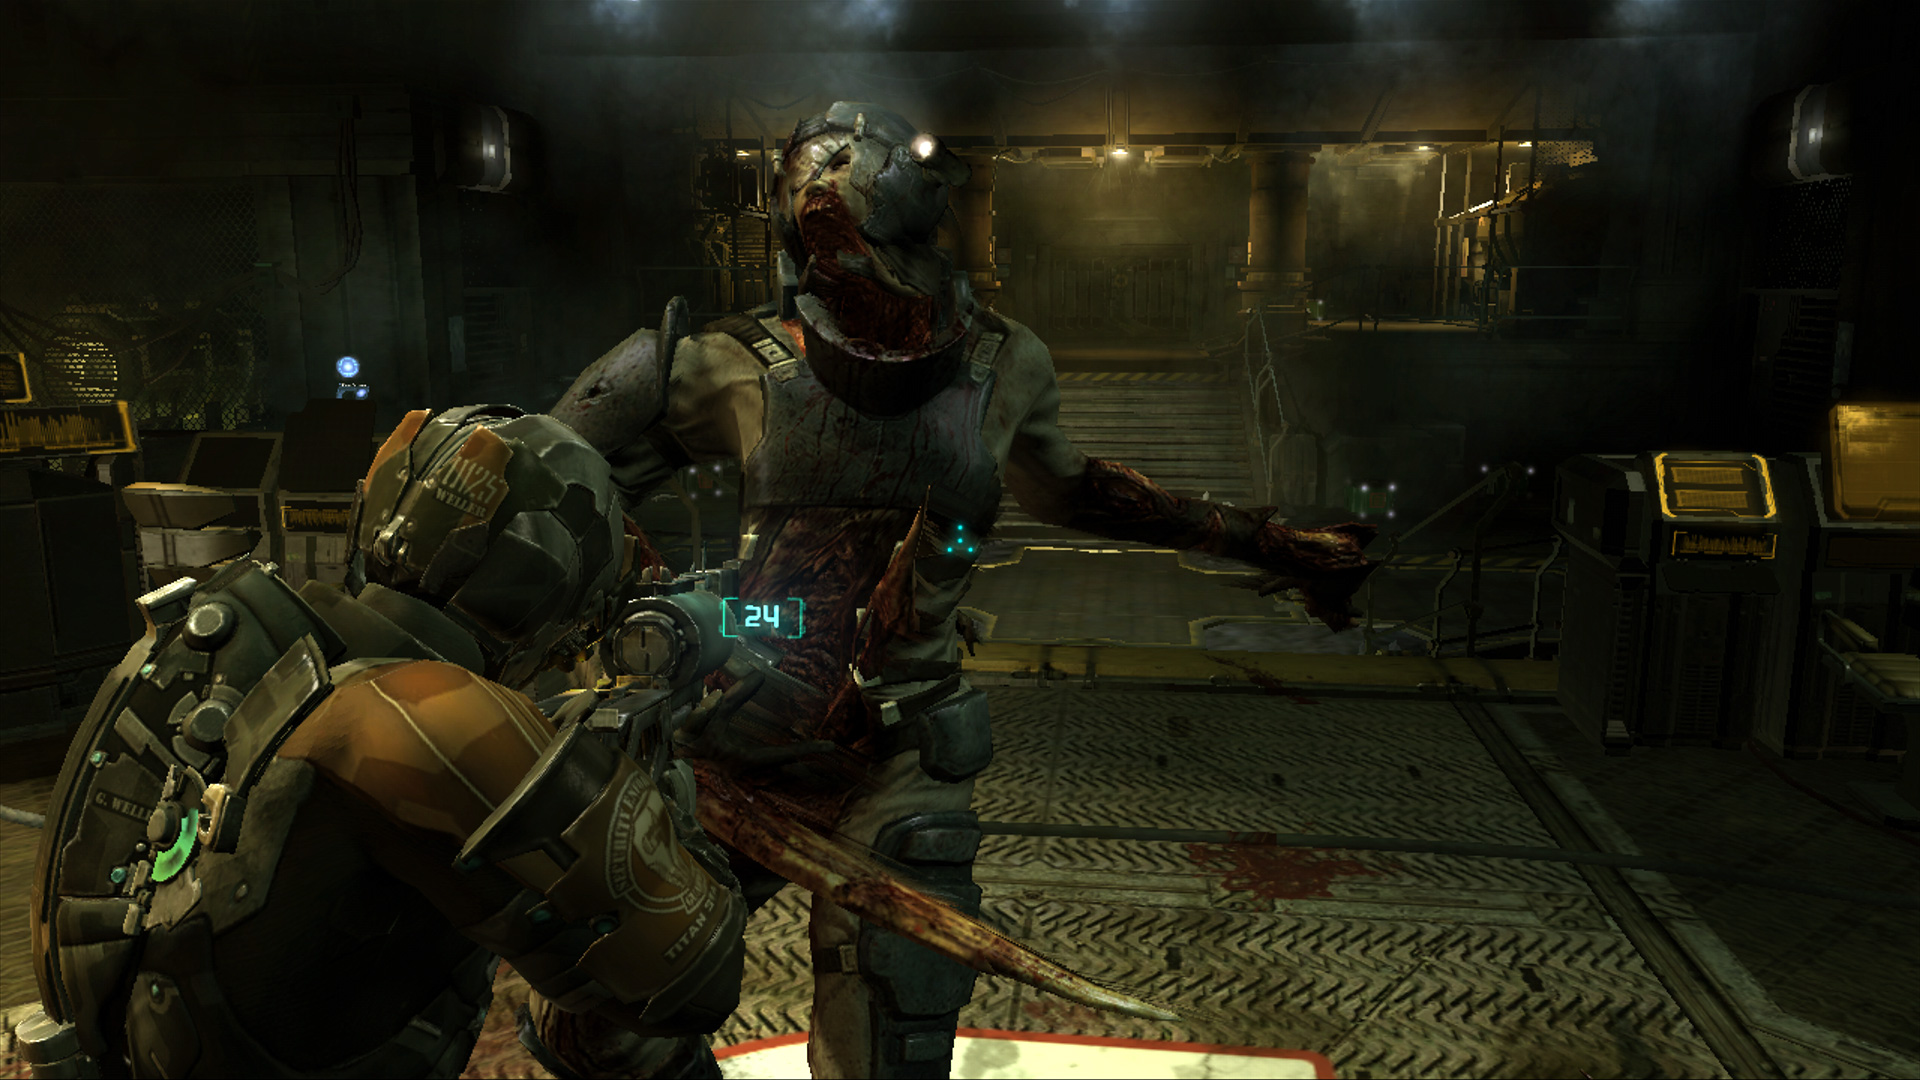 Revisemos la historia que traerá Dead Space 3 [Video]